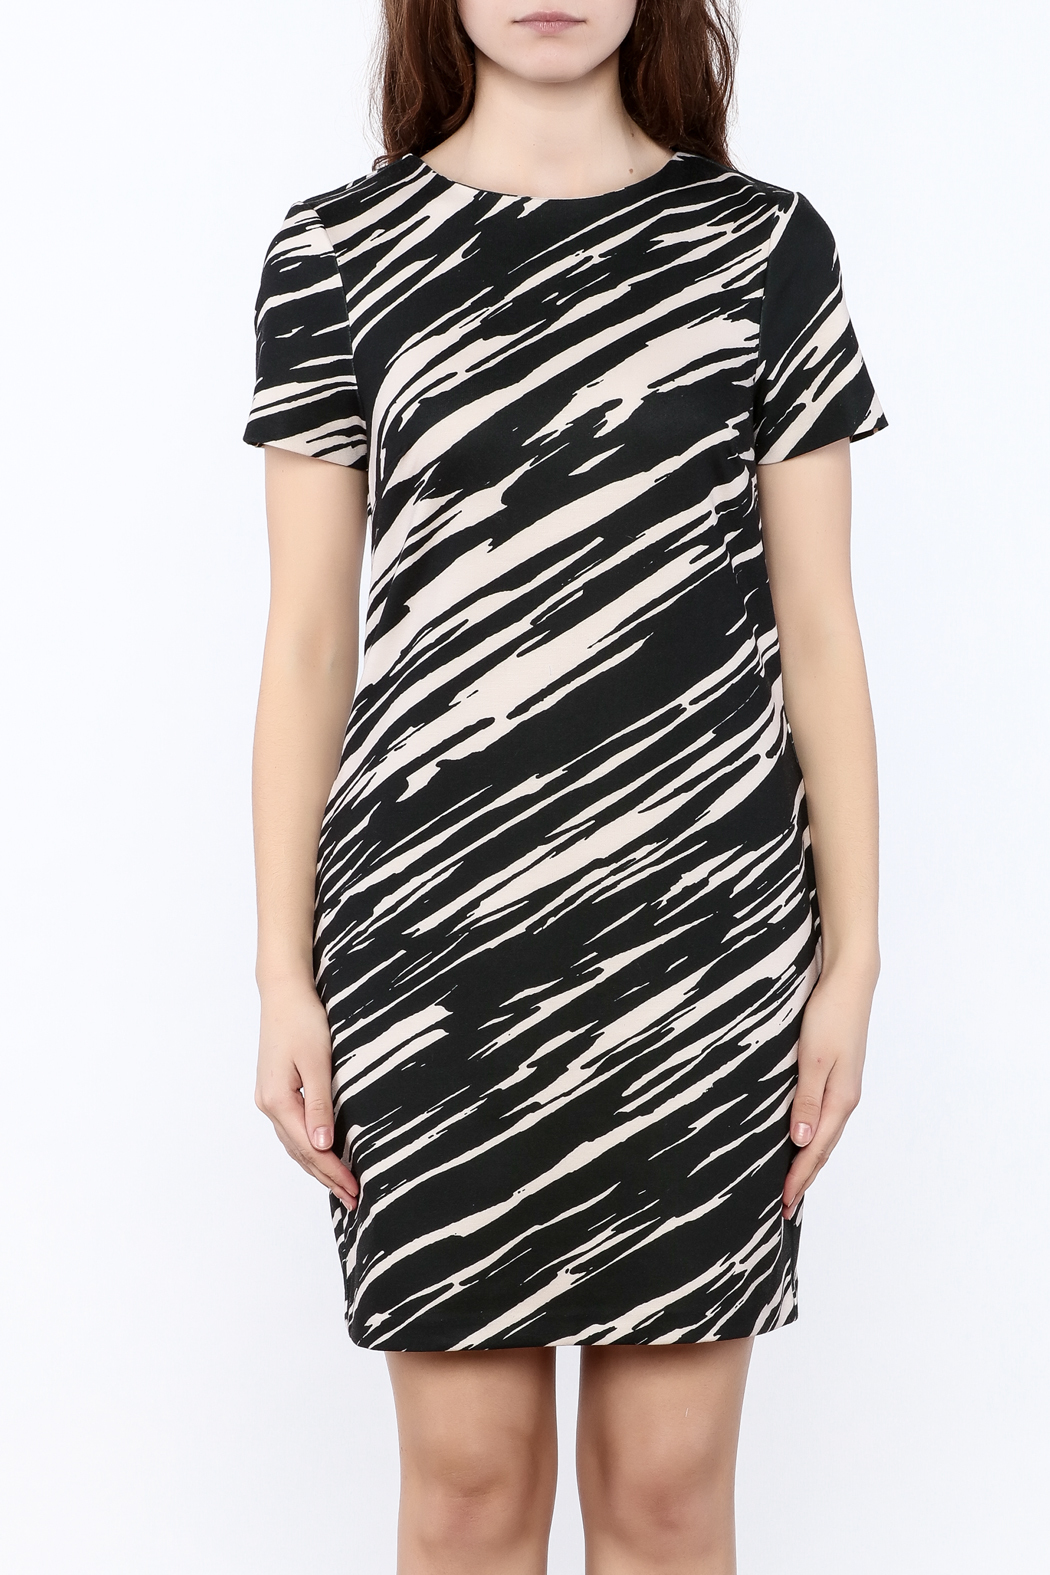 Trina by Trina Turk Zebra Mini Dress - Side Cropped Image